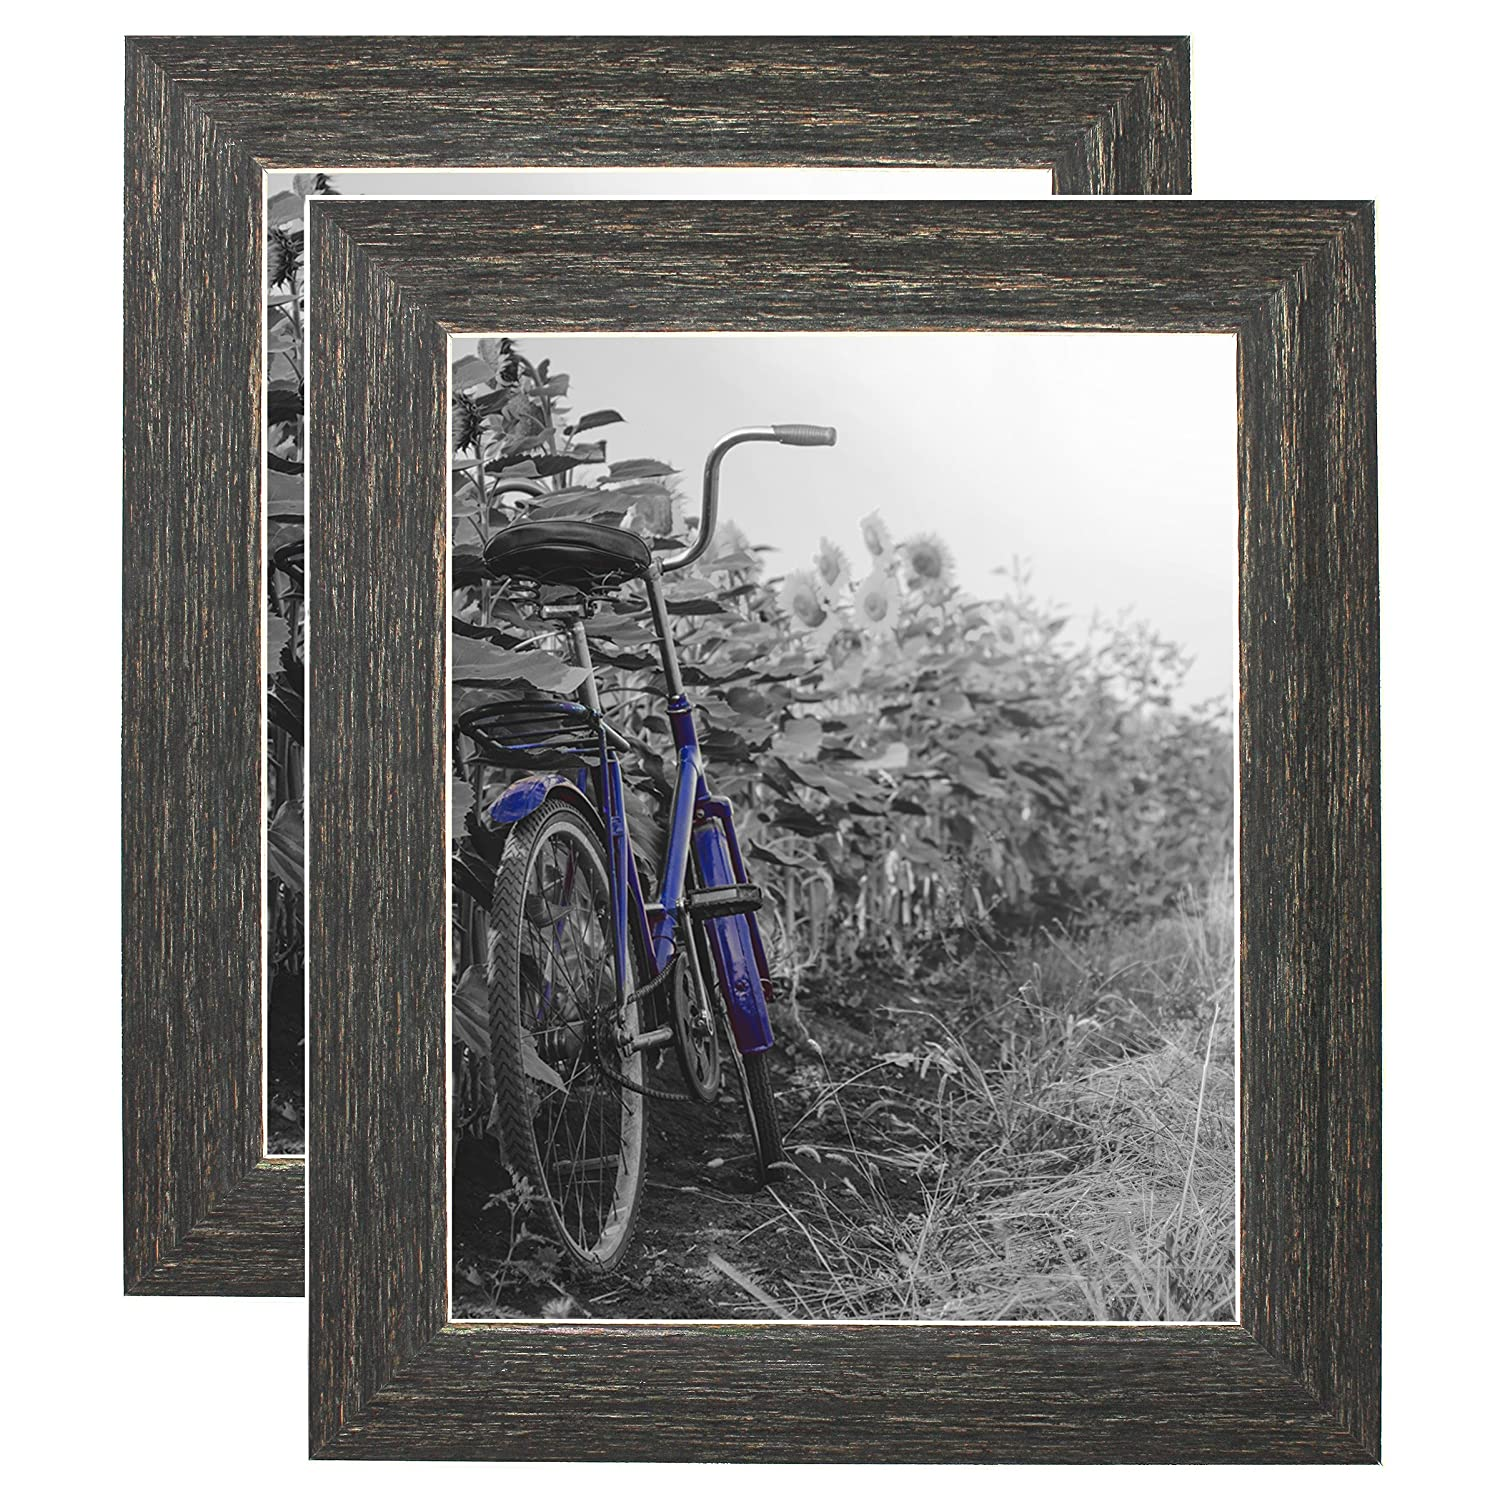 Amazon.com - Americanflat 2 Pack - 8x10 Barnwood Rustic Picture ...